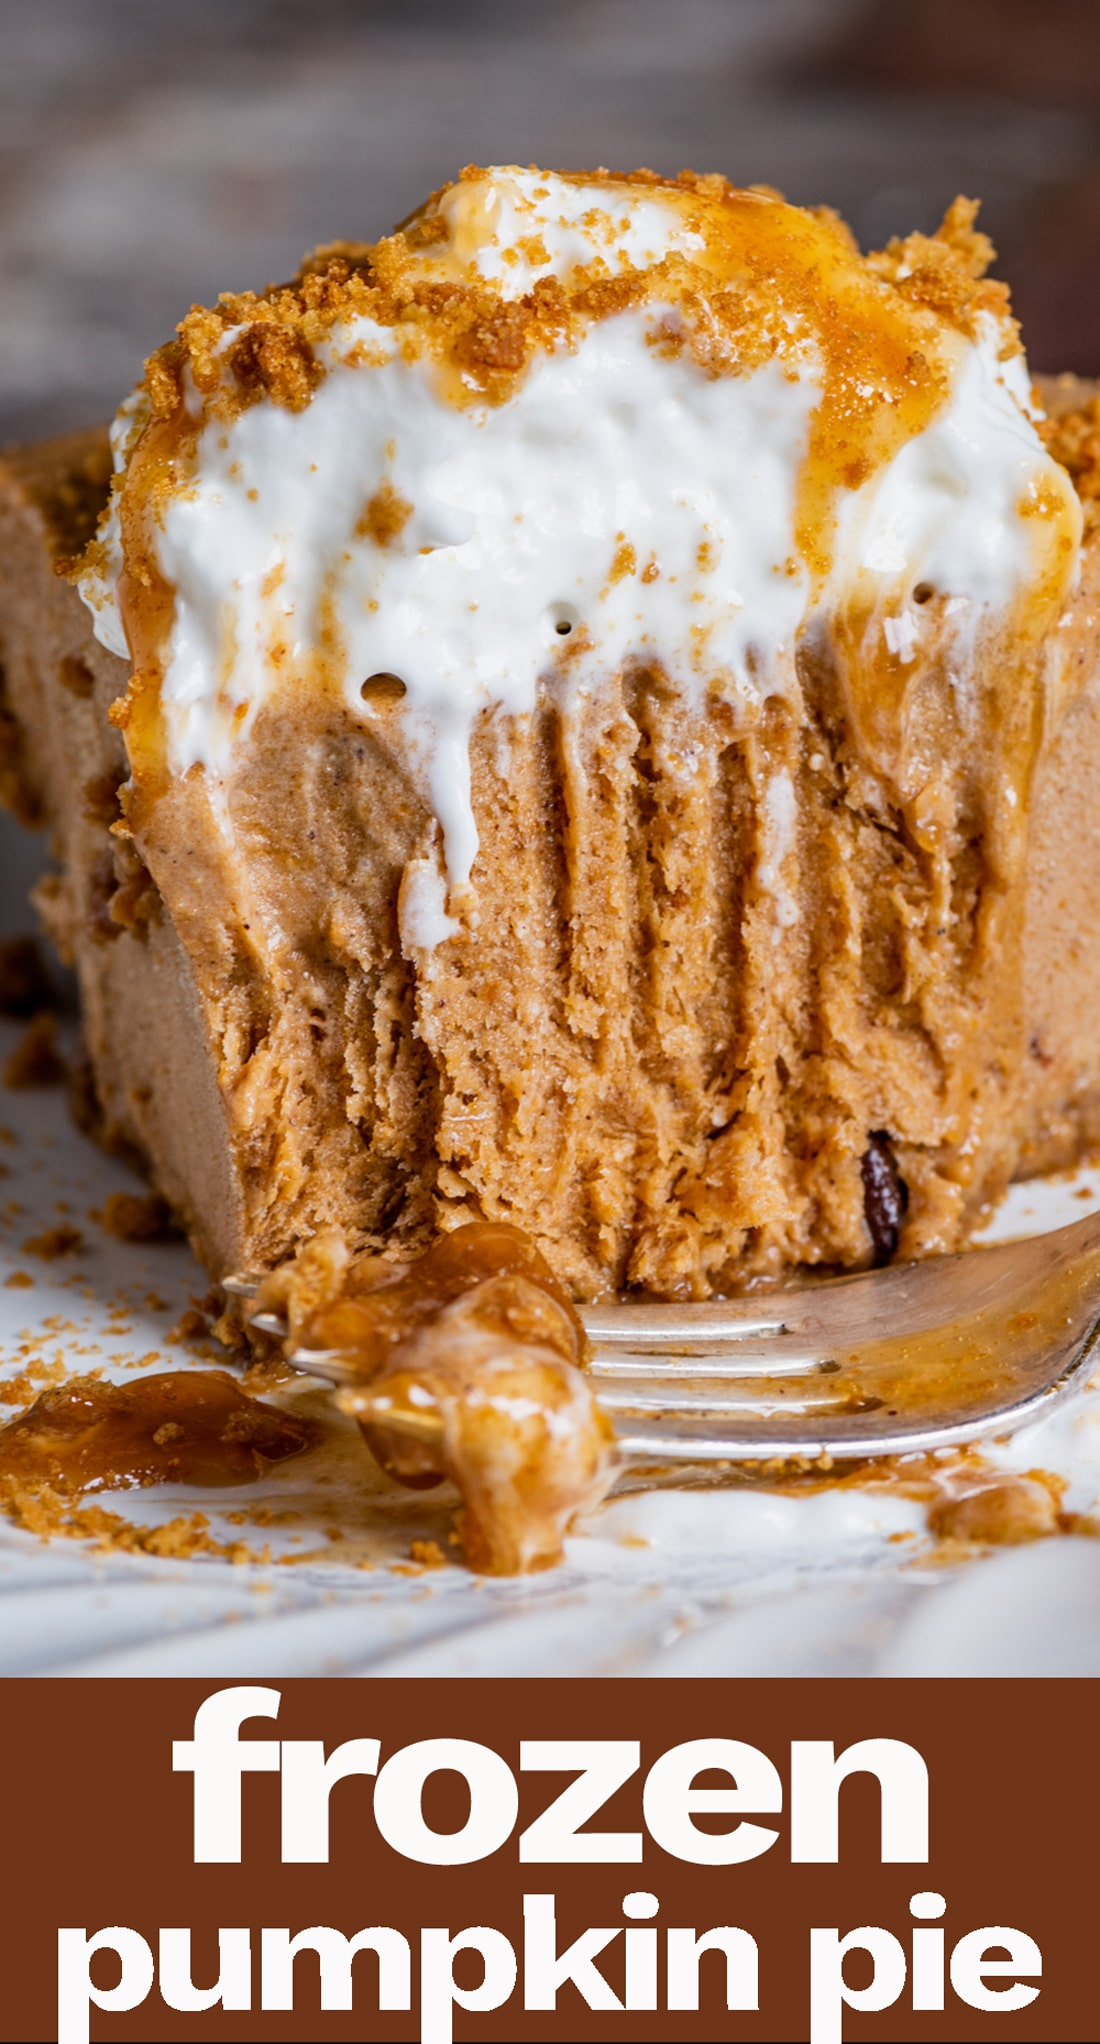 Looking for an alternative to traditional pumpkin pie? Try this frozen pumpkin pie made with coffee ice cream sitting inside a gingersnap crust. An easy pumpkin recipe for the holidays! via @tastesoflizzyt